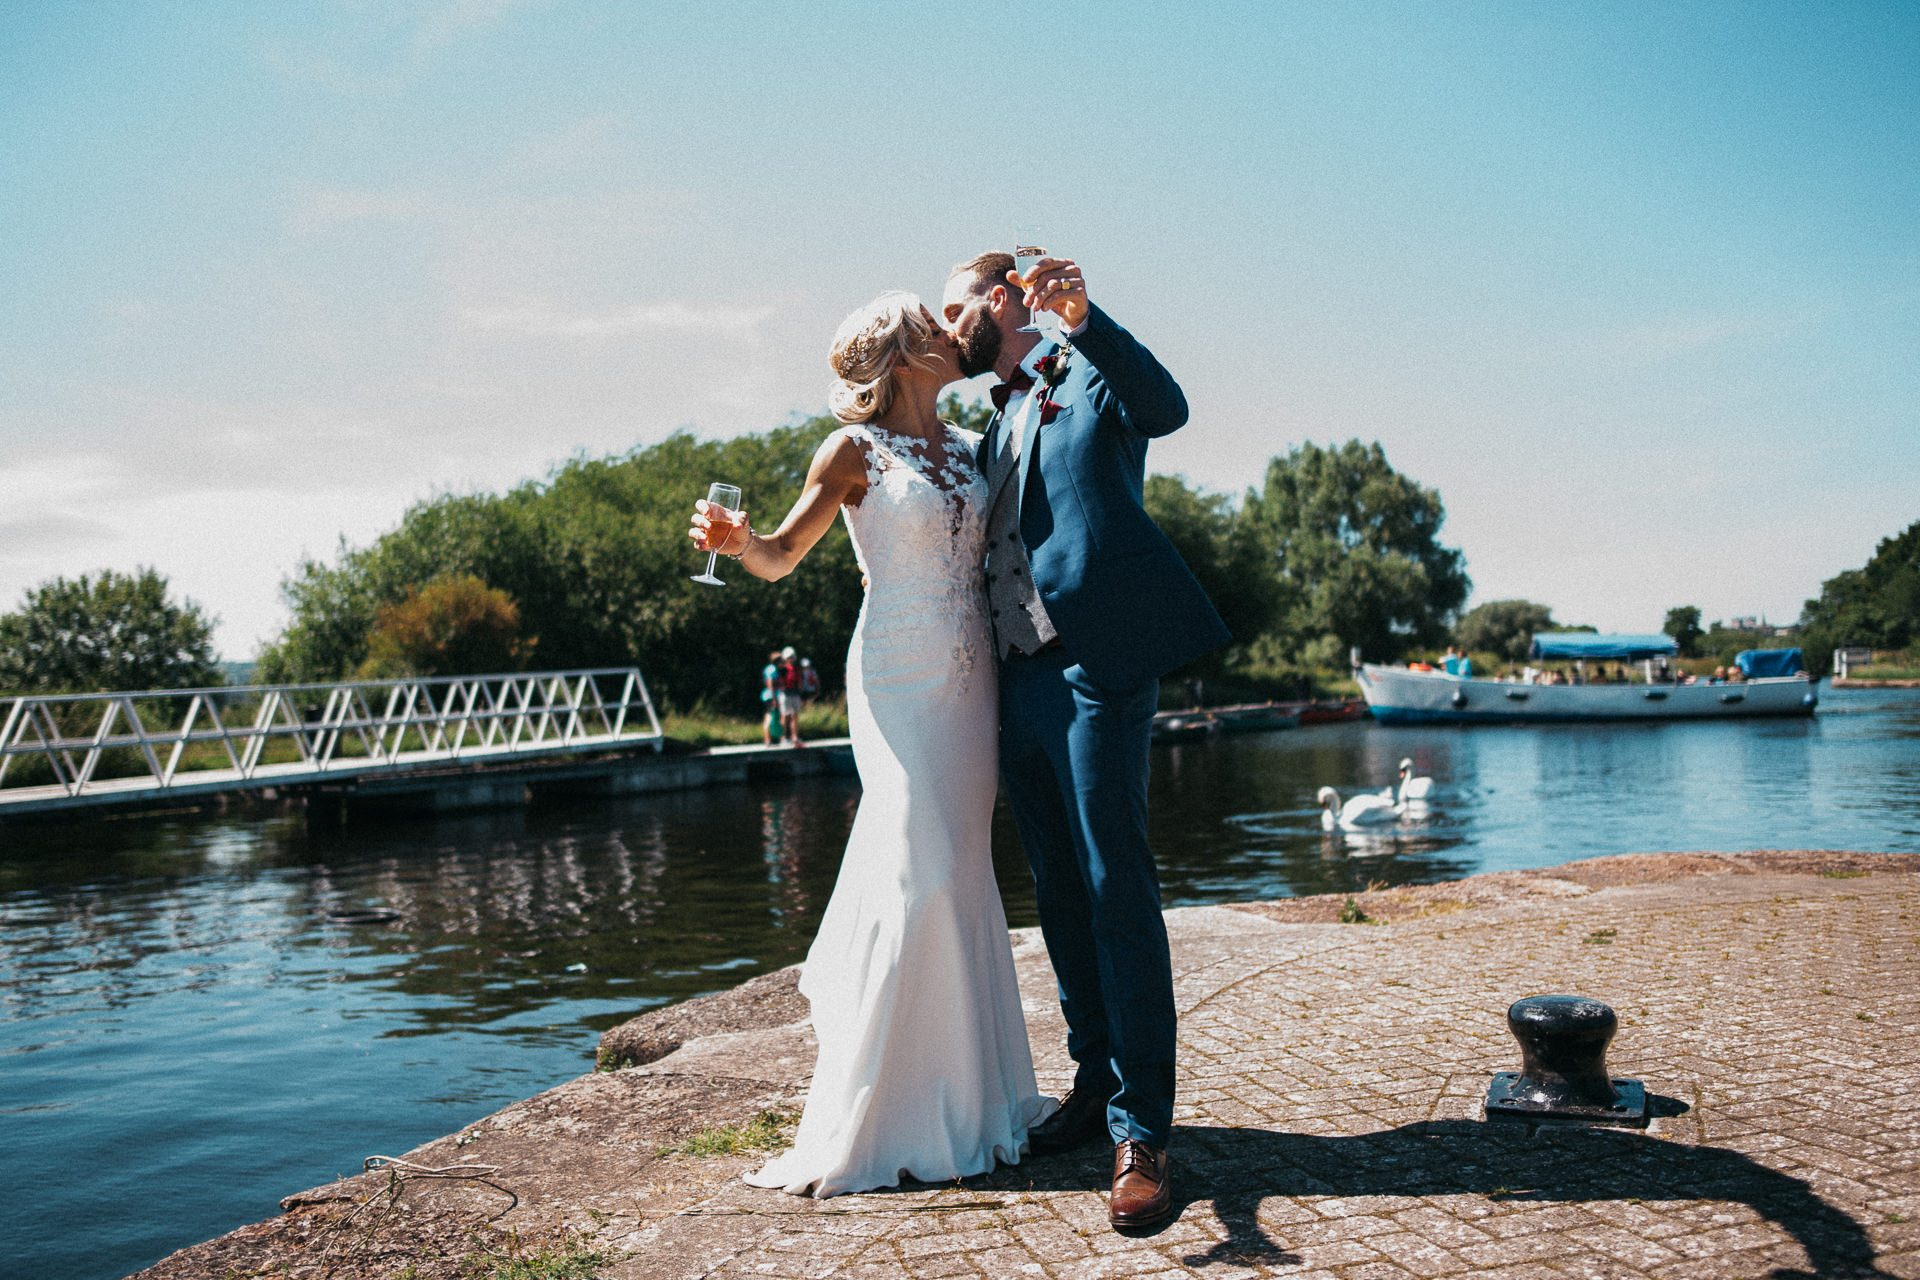 0094-DEVON-SOMERSET-WEDDING-PHOTOGRAPHER-0410-BEST-OF-2019-LOUISE-MAY-DEVON-SOMERSET-WEDDING-PHOTOGRAPHY-LM2_1898